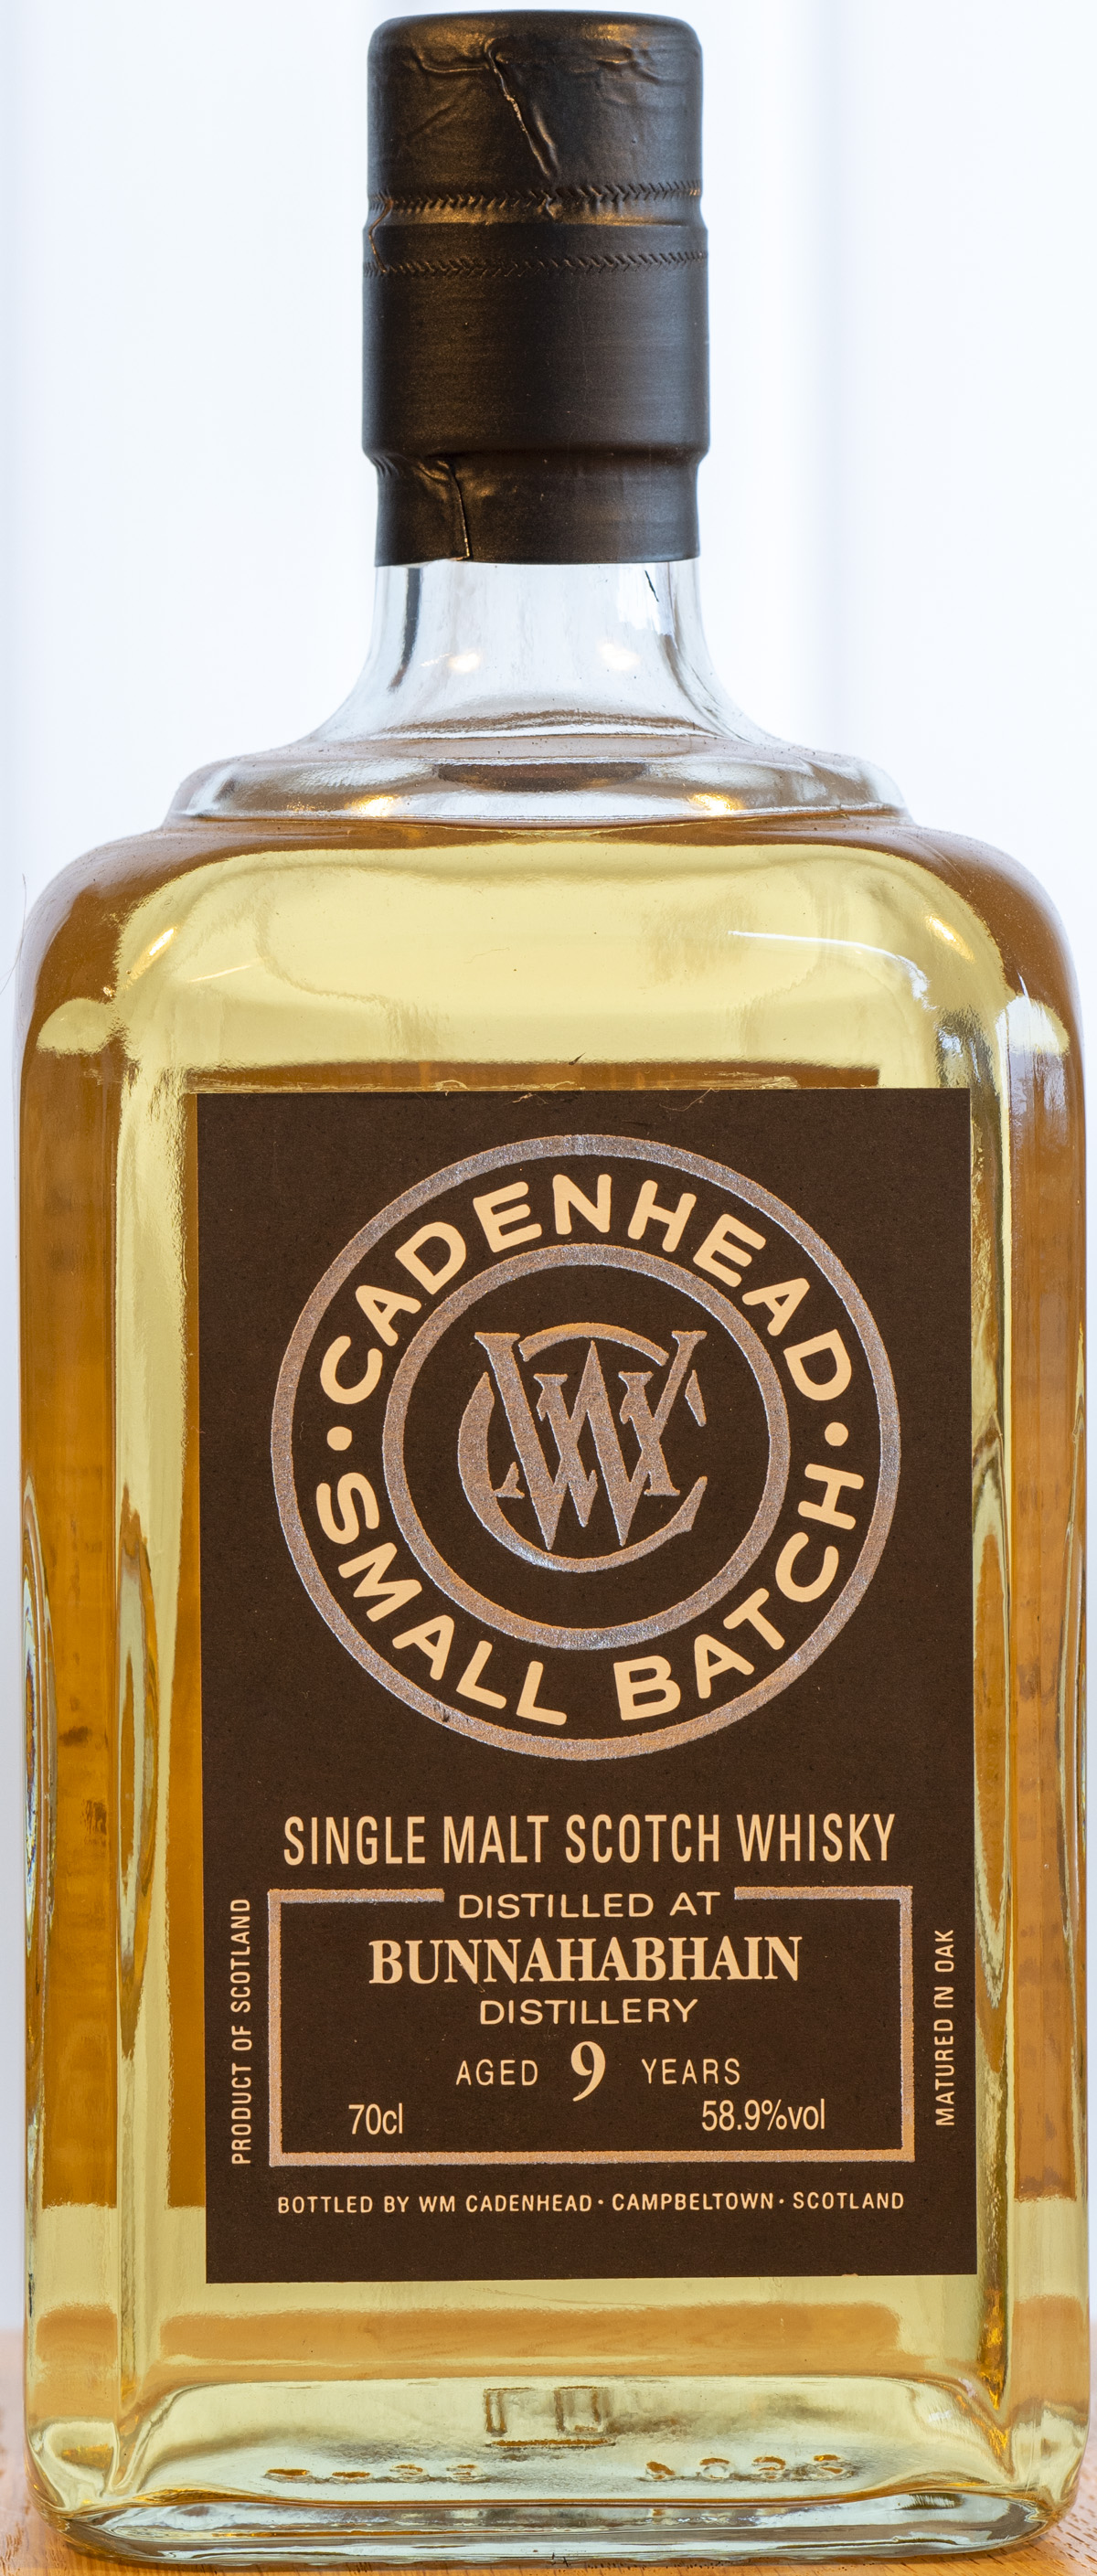 Billede: PHC_3939 - Cadenhead Small Batch Bunnahabhain 9y - bottle front.jpg